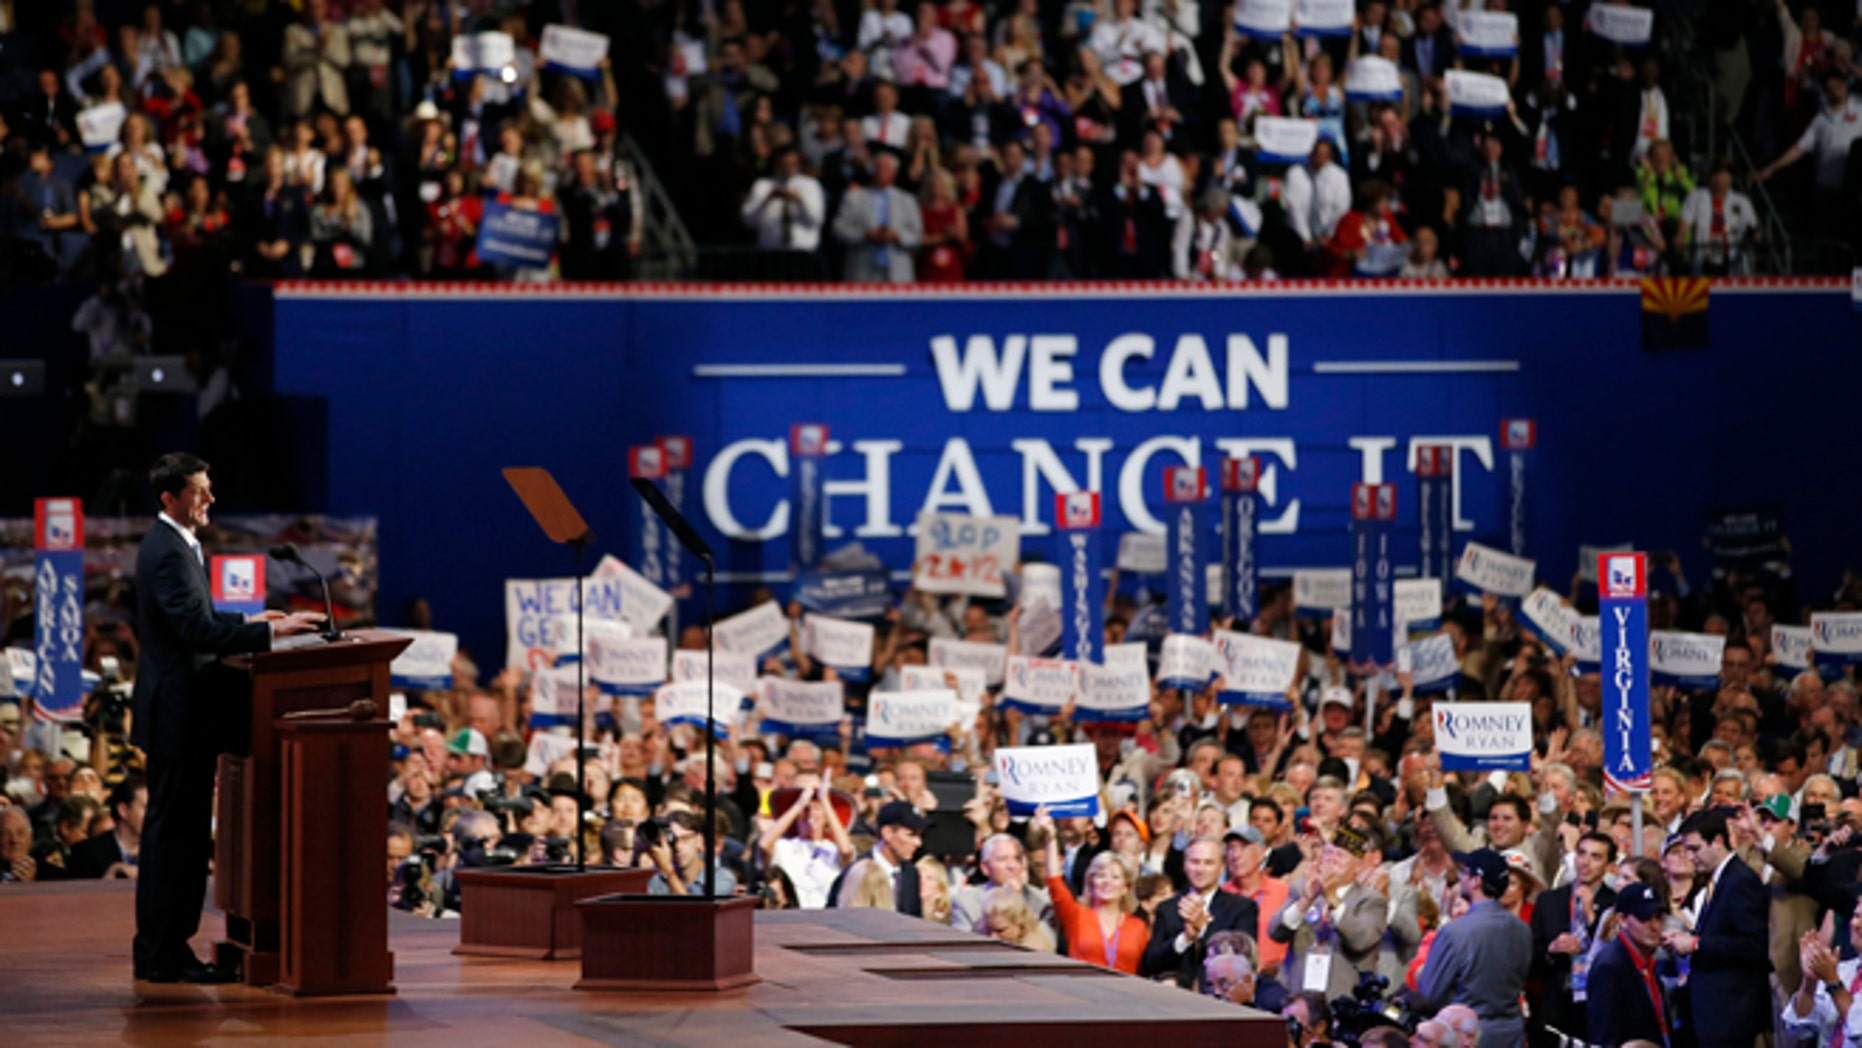 Aug. 29, 2012: Republican vice presidential nominee Paul Ryan addresses the Republican National Convention in Tampa, Fla.